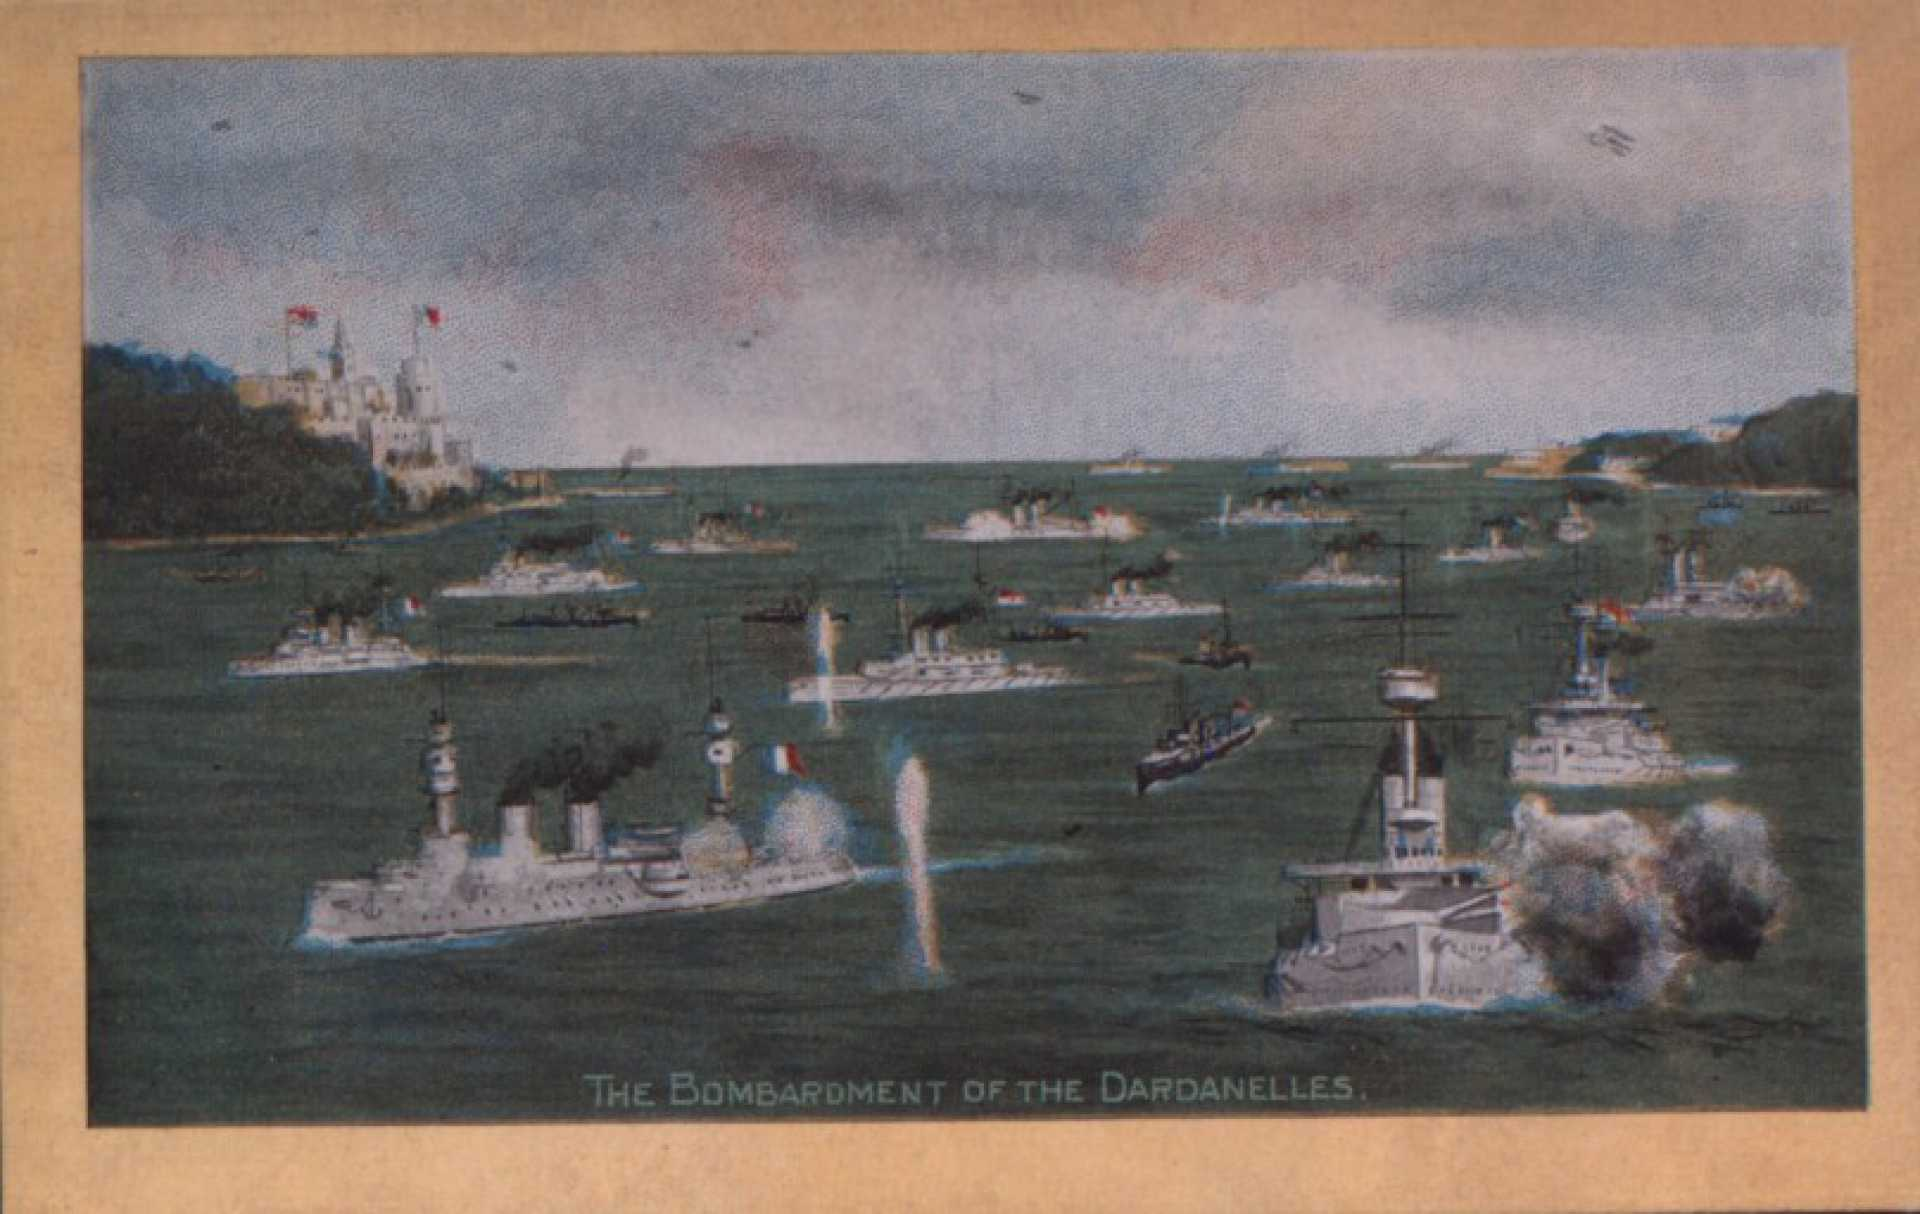 The Bombardment of the Dardanelles